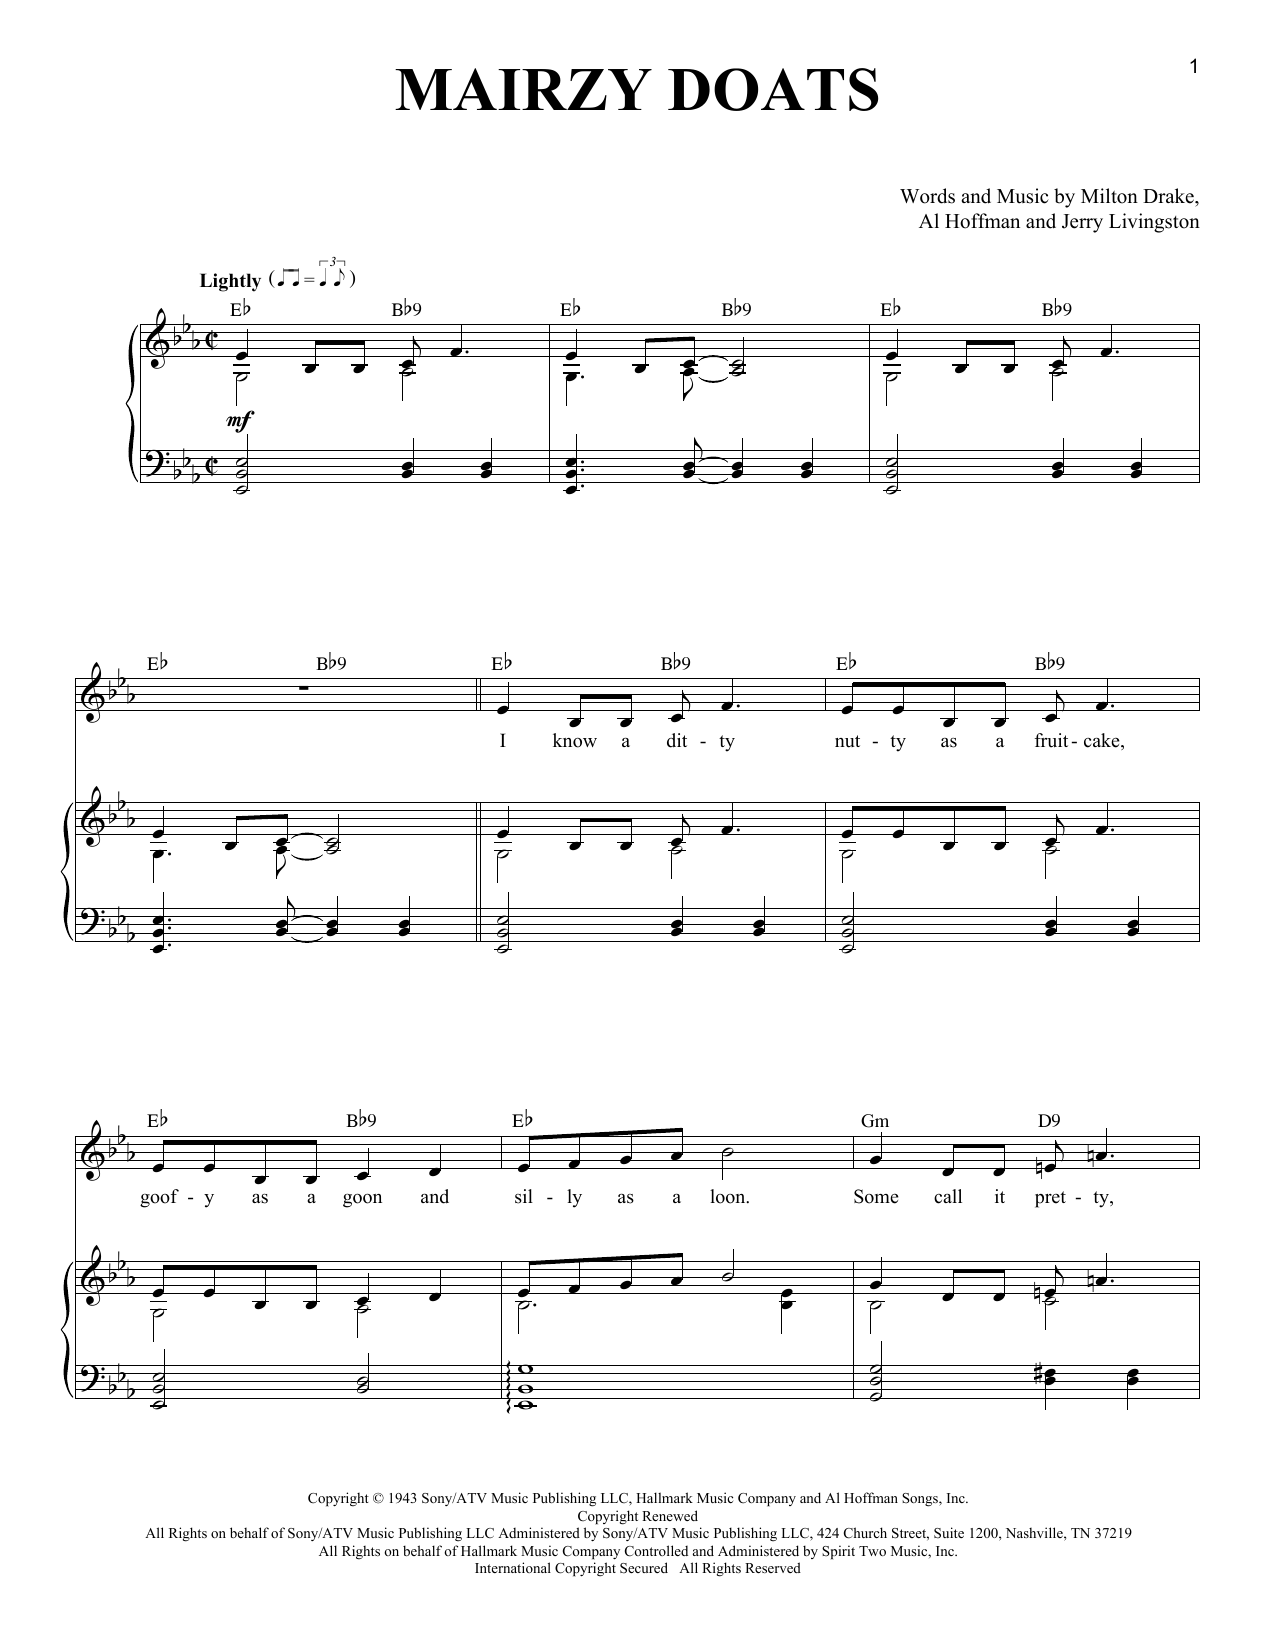 Milton Drake Mairzy Doats sheet music notes and chords. Download Printable PDF.